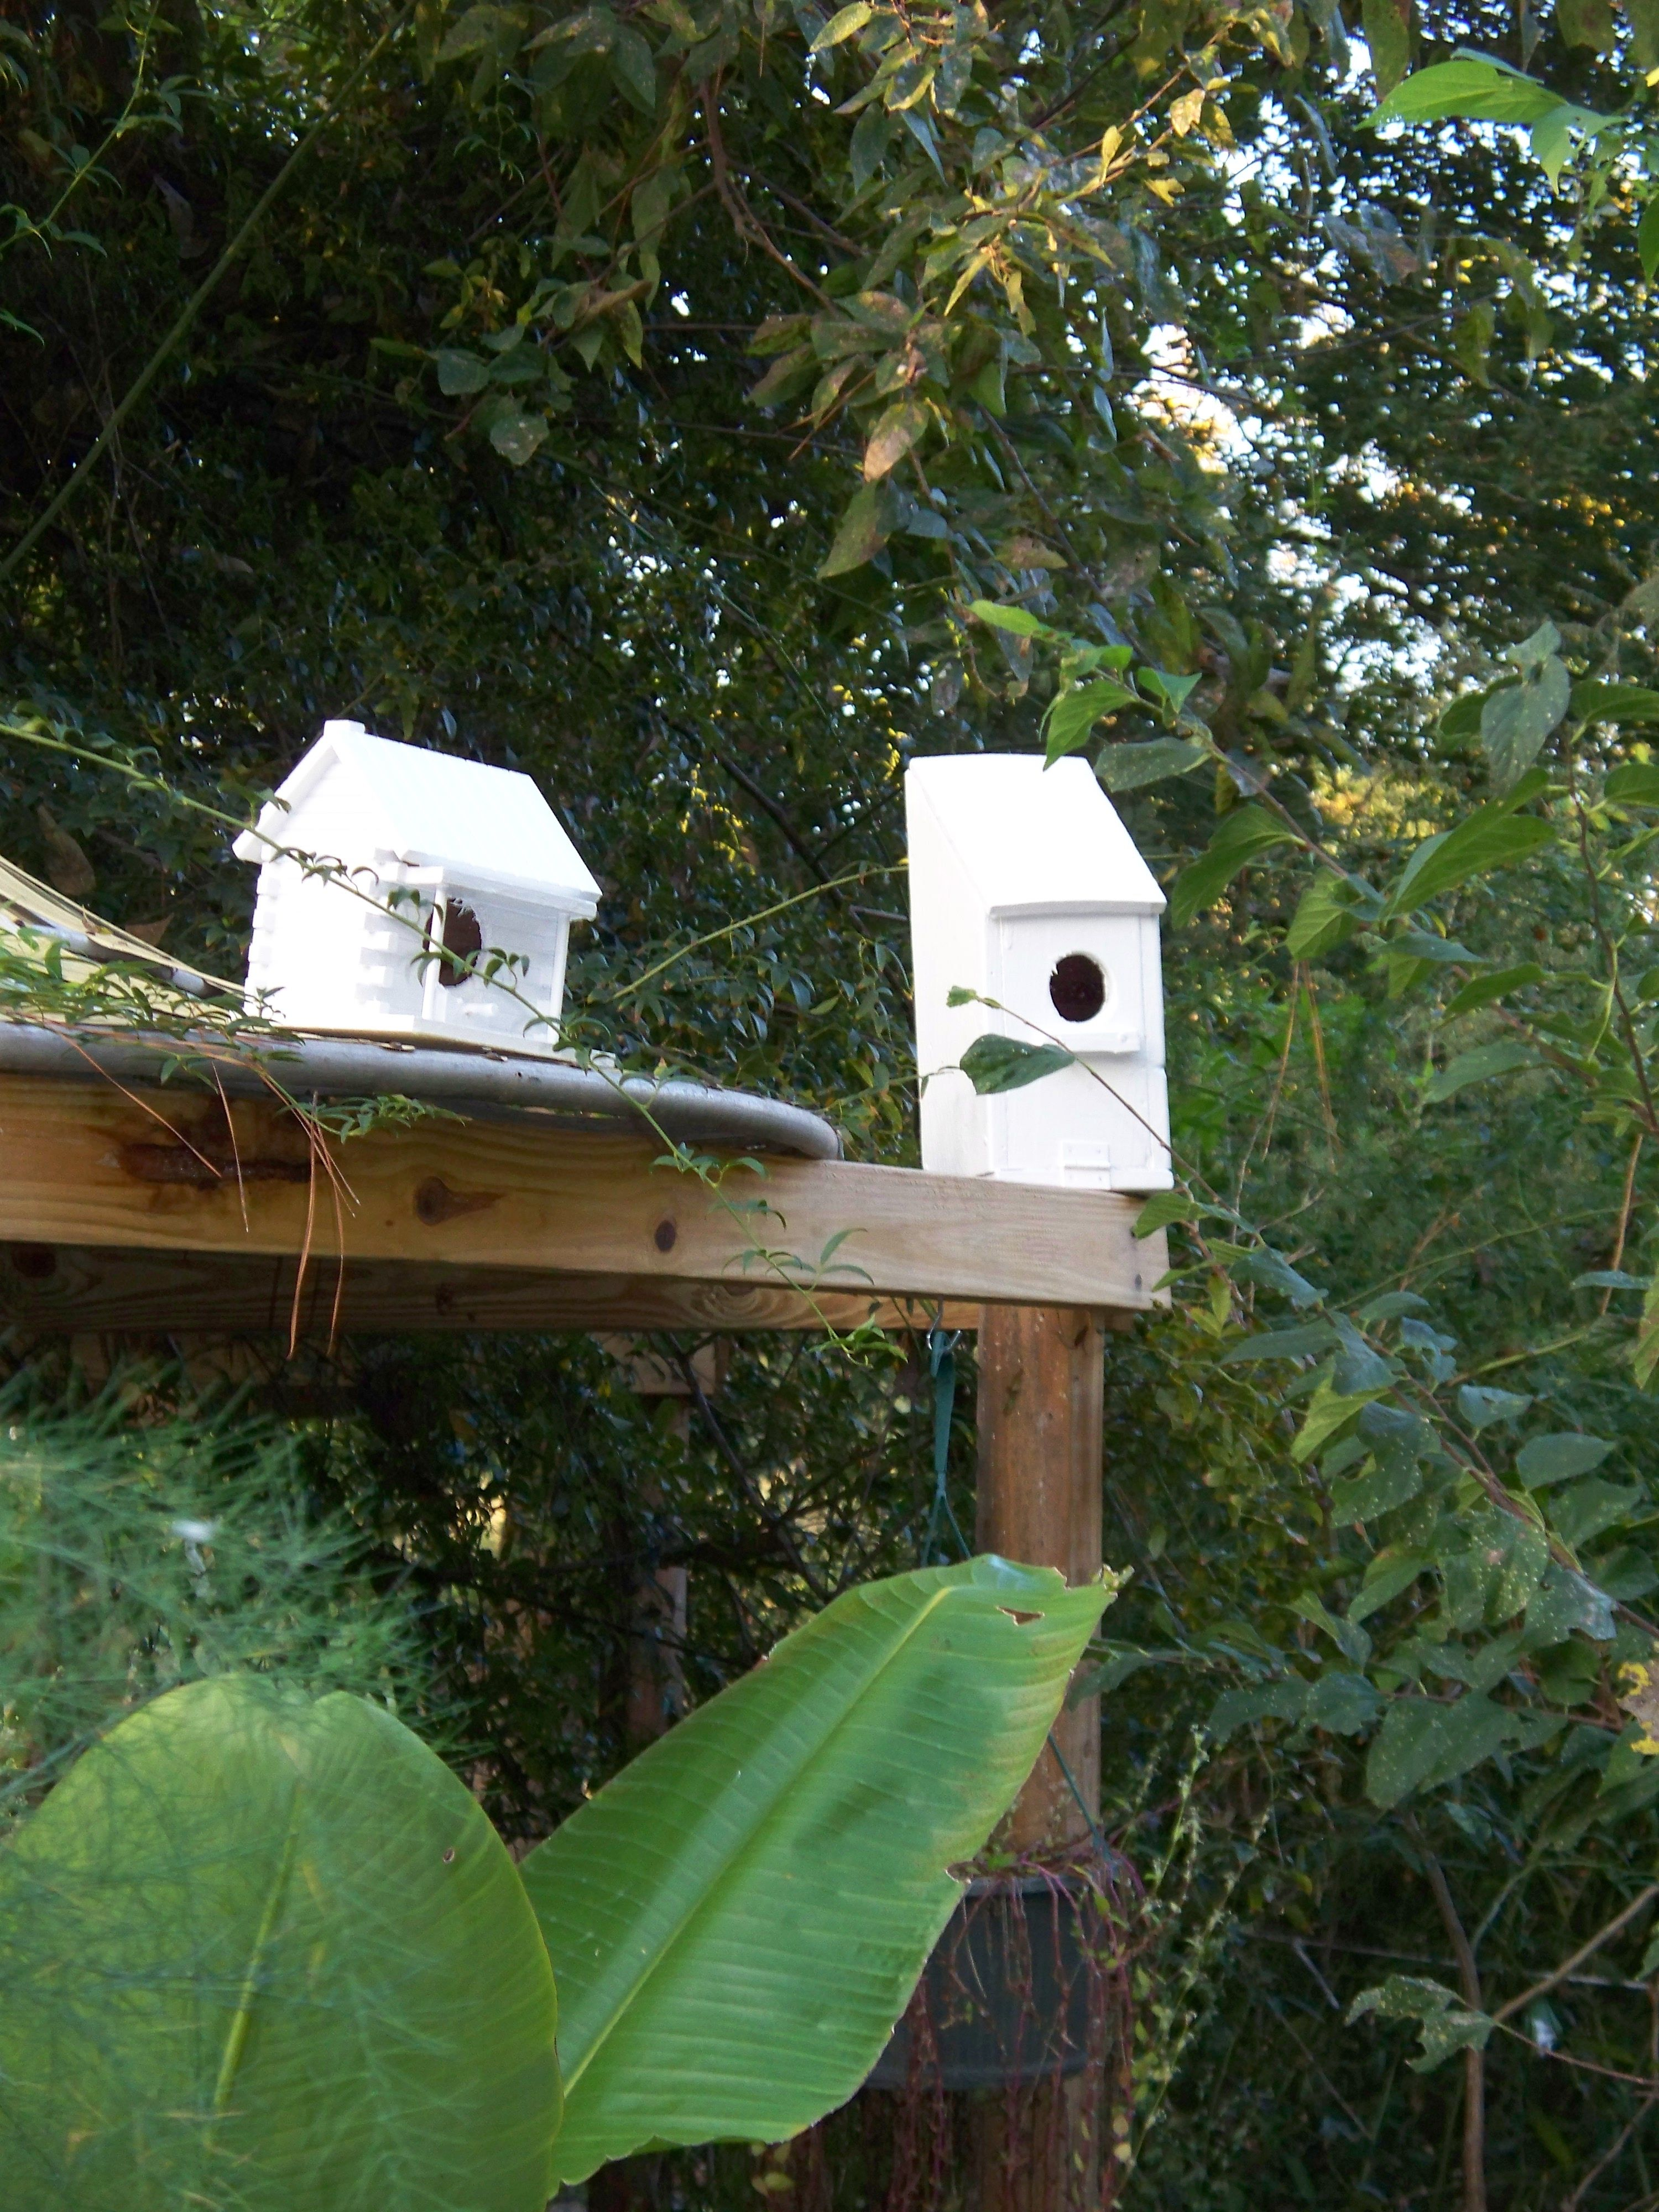 Two birdhouses that I got at a thrift store and painted and drilled to enlarge the doors.